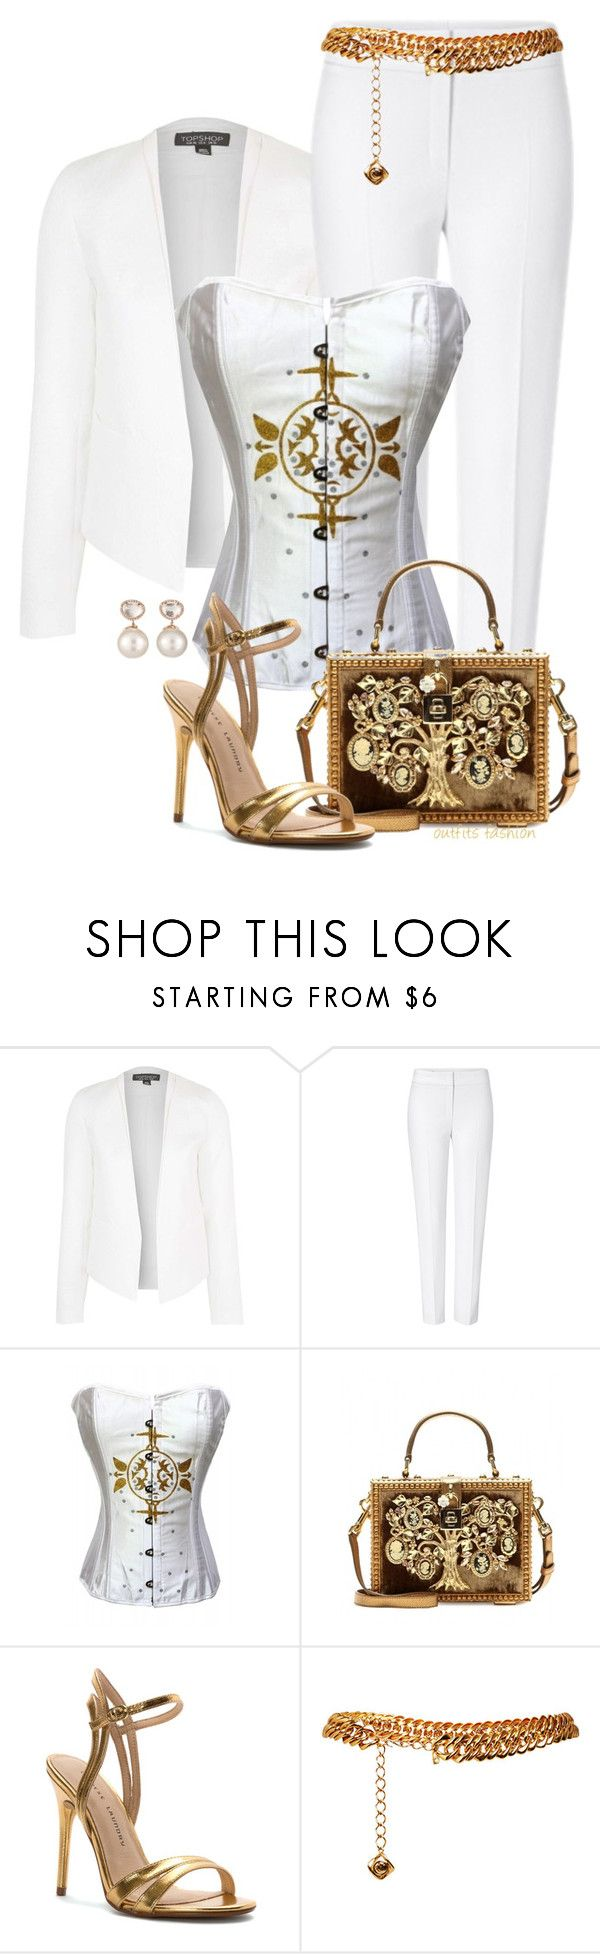 """White & Gold"" by rosipolooyas on Polyvore featuring moda, Topshop, ESCADA, Dolce&Gabbana, Chinese Laundry, Yves Saint Laurent y Samira 13"